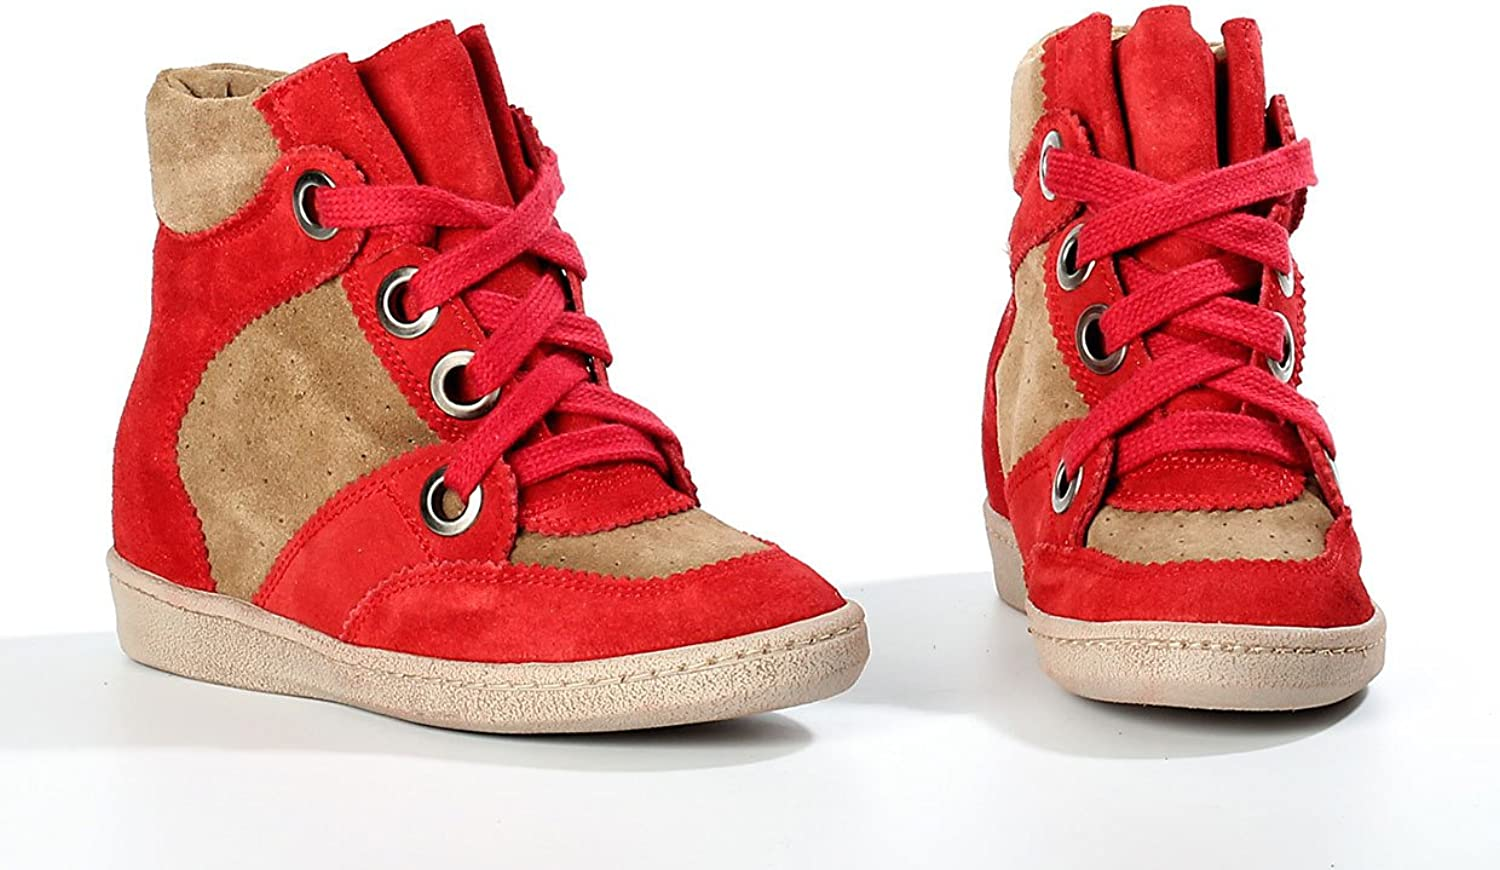 MTNG Originals Amberes Wedge Suede Red Tan Size 6 Boot shoes 50679 New